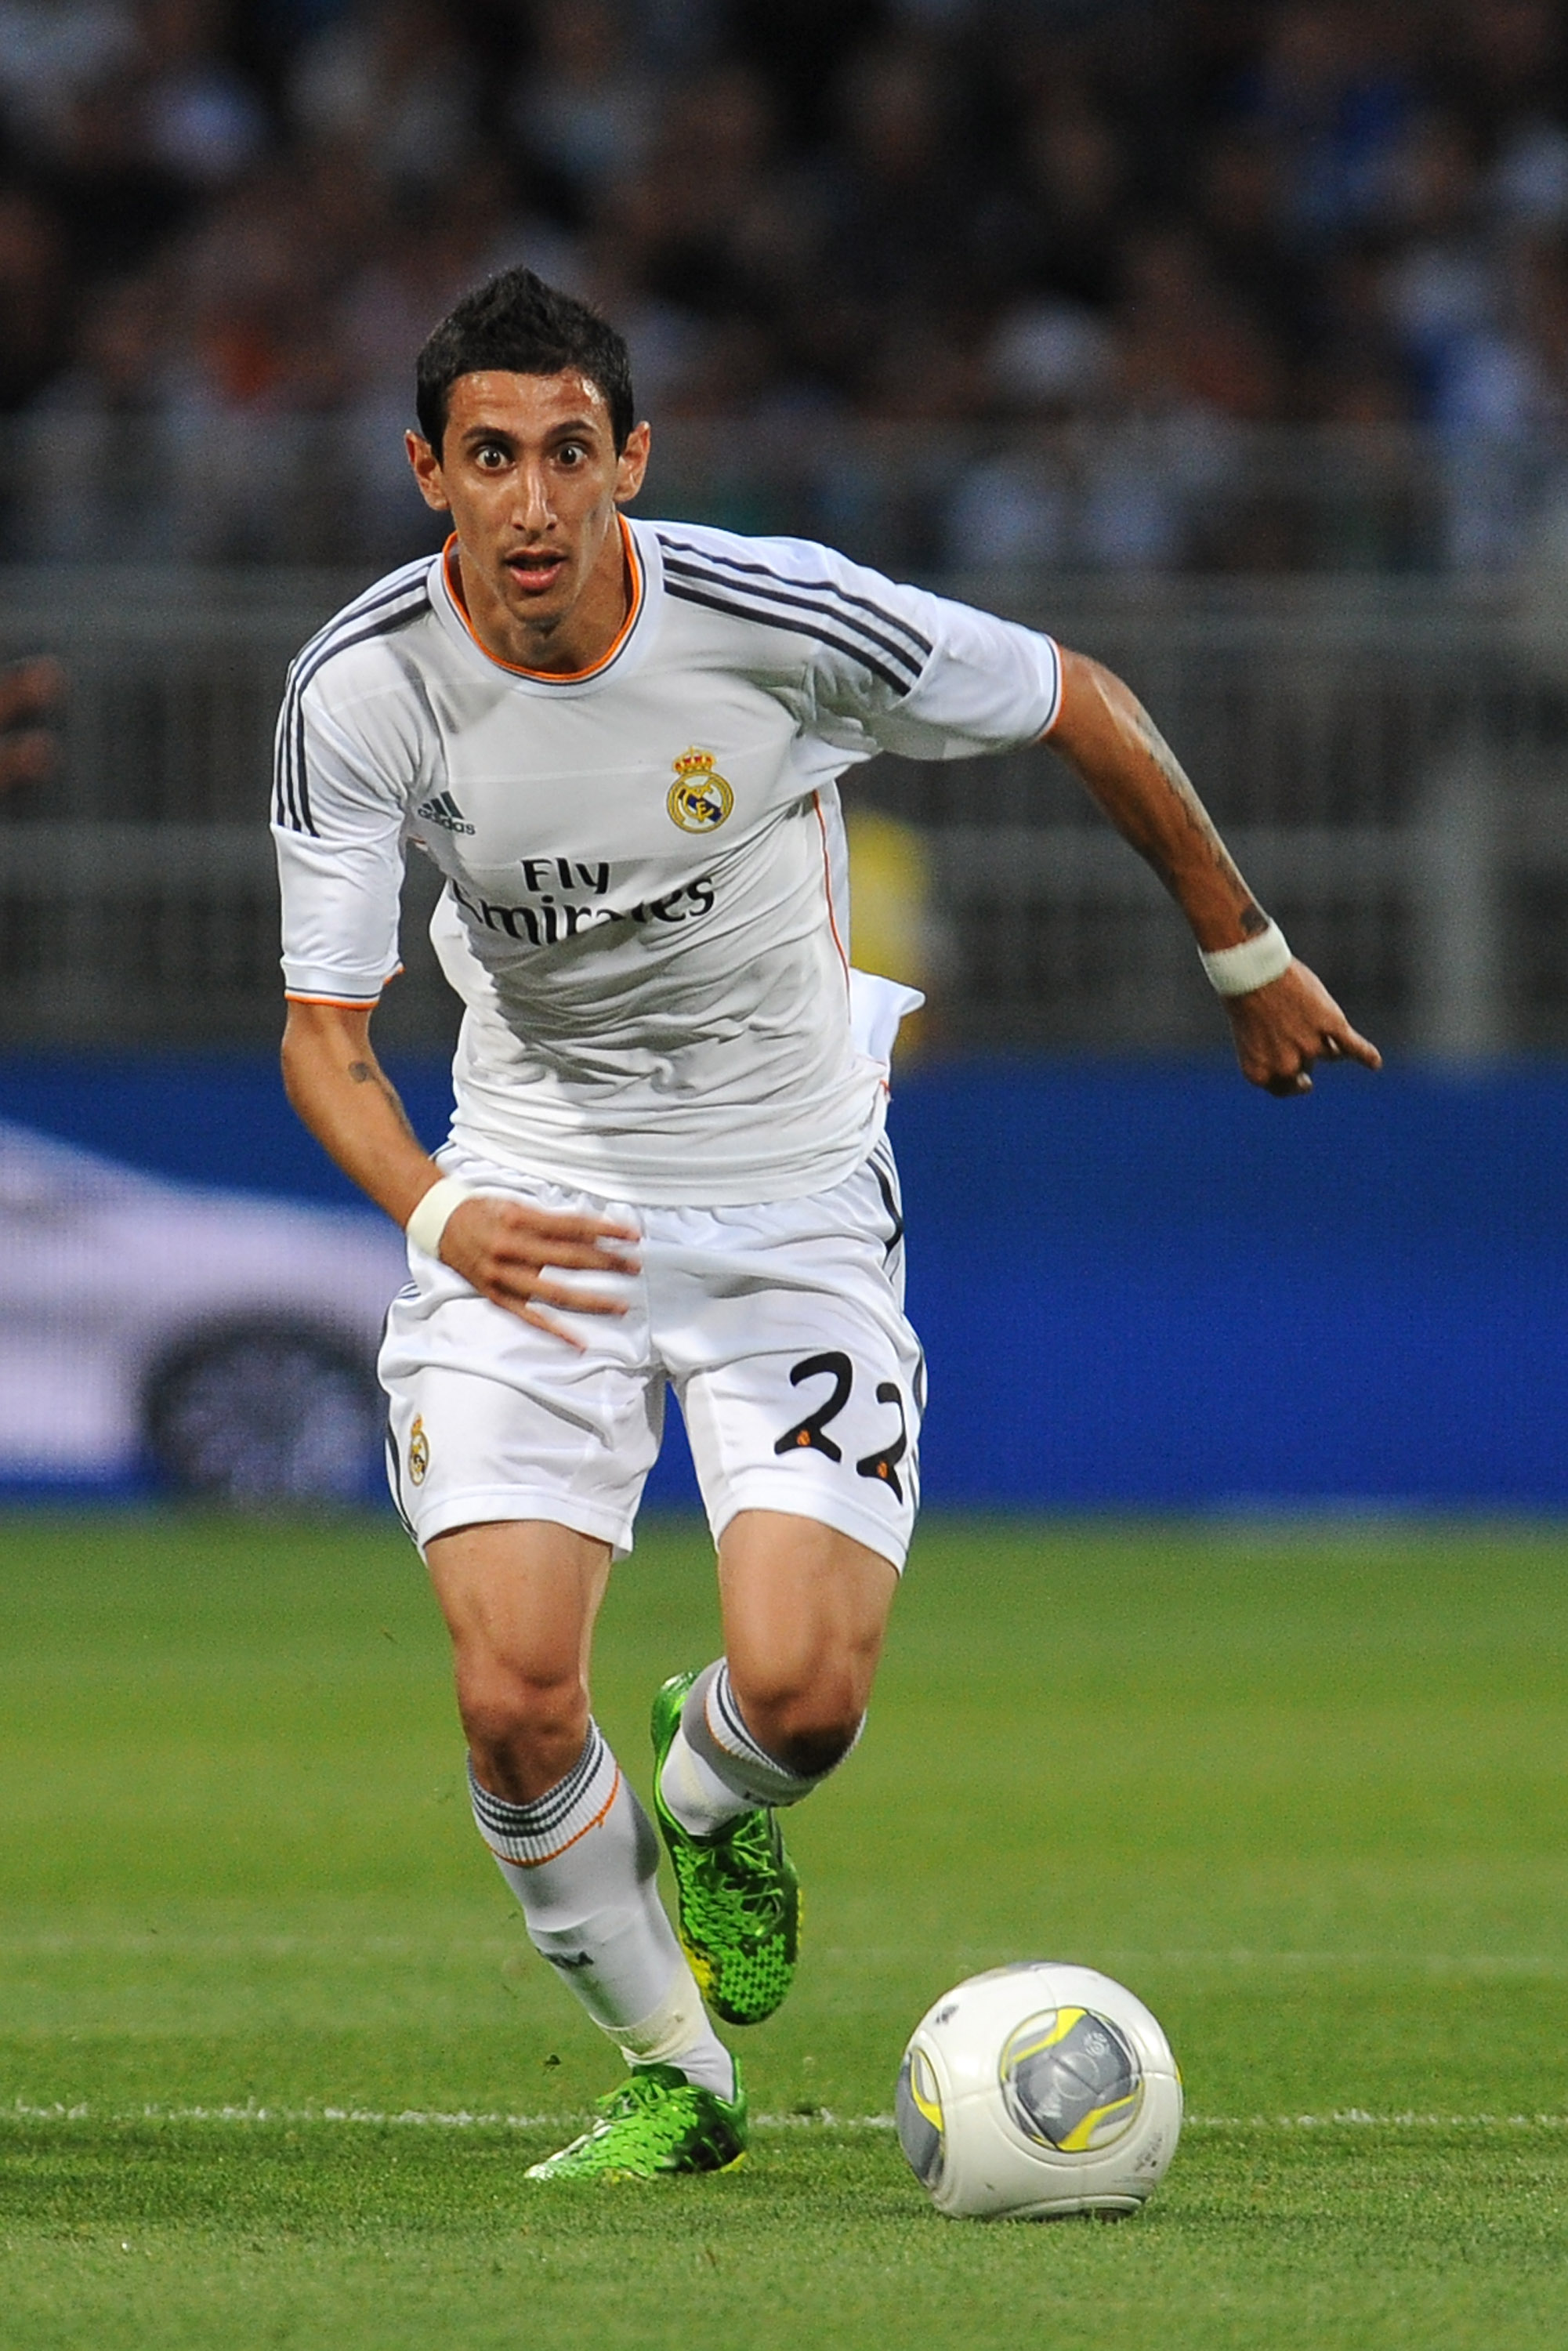 Arsenal eye Real Madrid star Angel Di Maria as Lukas Podolski heads for exit door